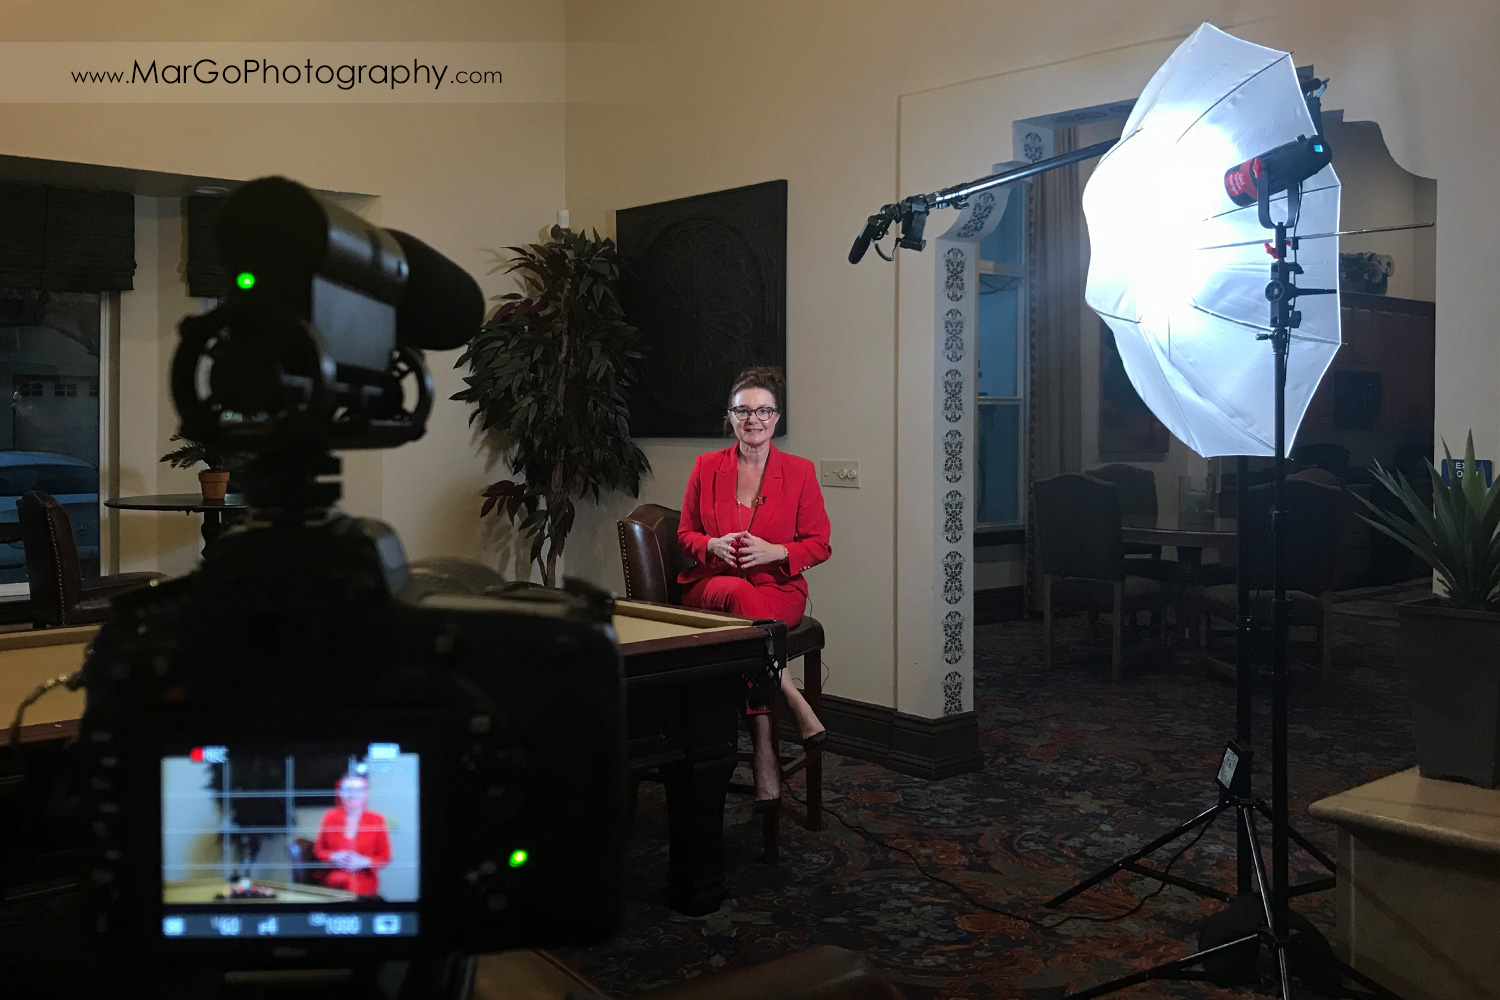 behind the scenes of indoor filming woman speaker in red suit witting on the chair behind the pool table